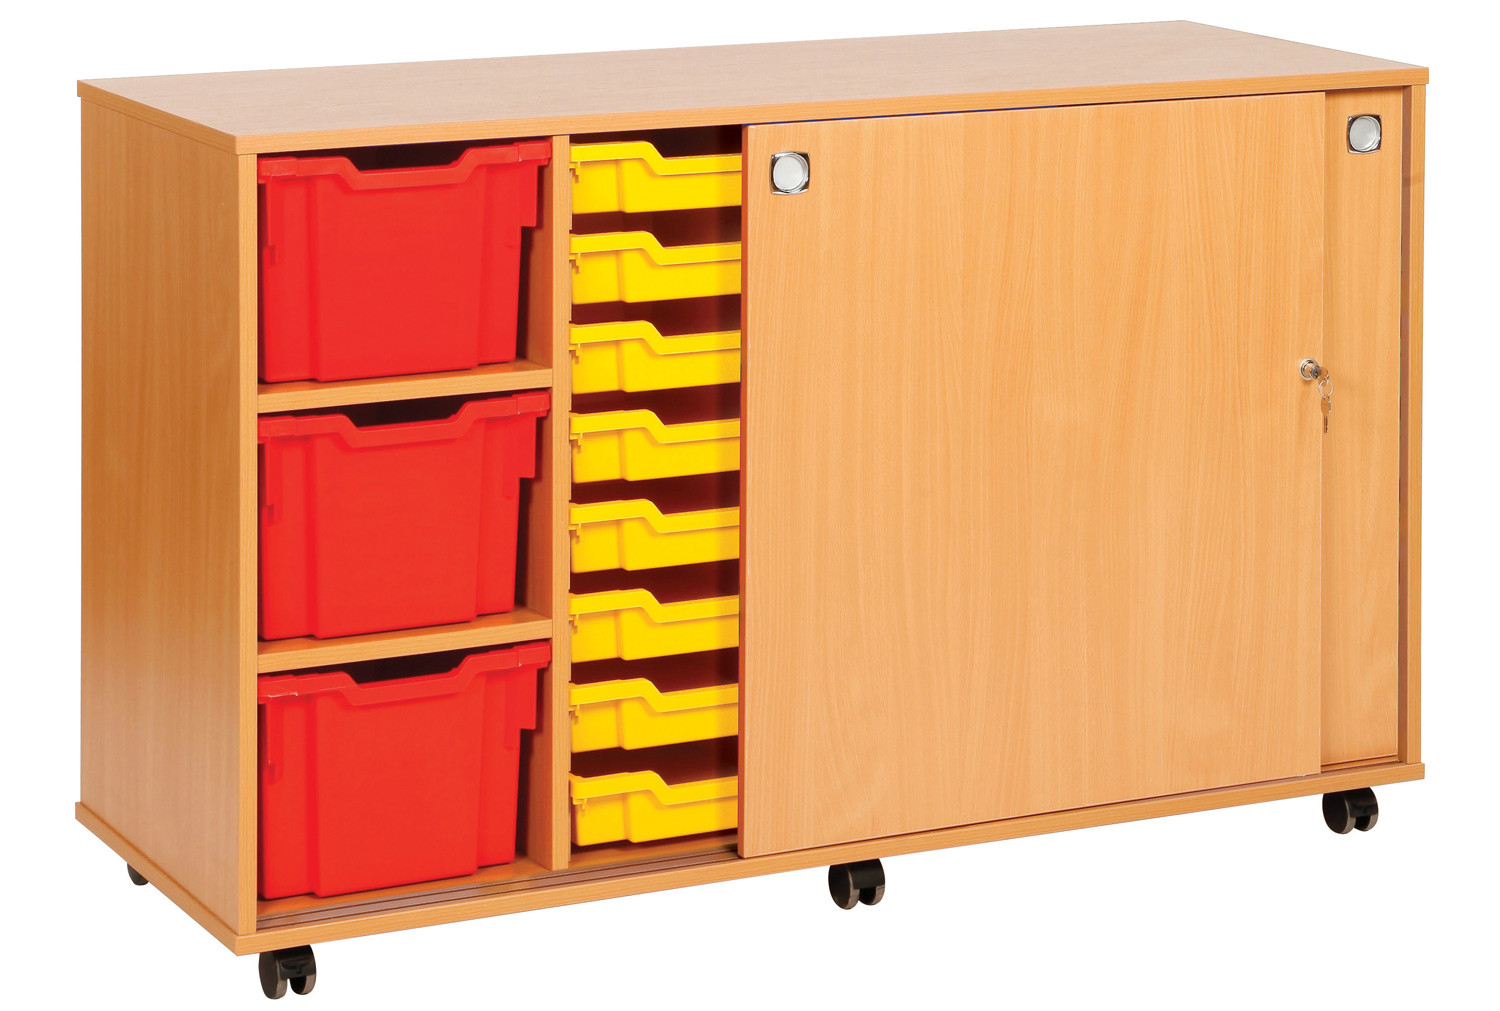 22 Tray Storage Unit With Sliding Door. Find Loads More Colours, Materials & Styles Online - Buy Office Furniture Online